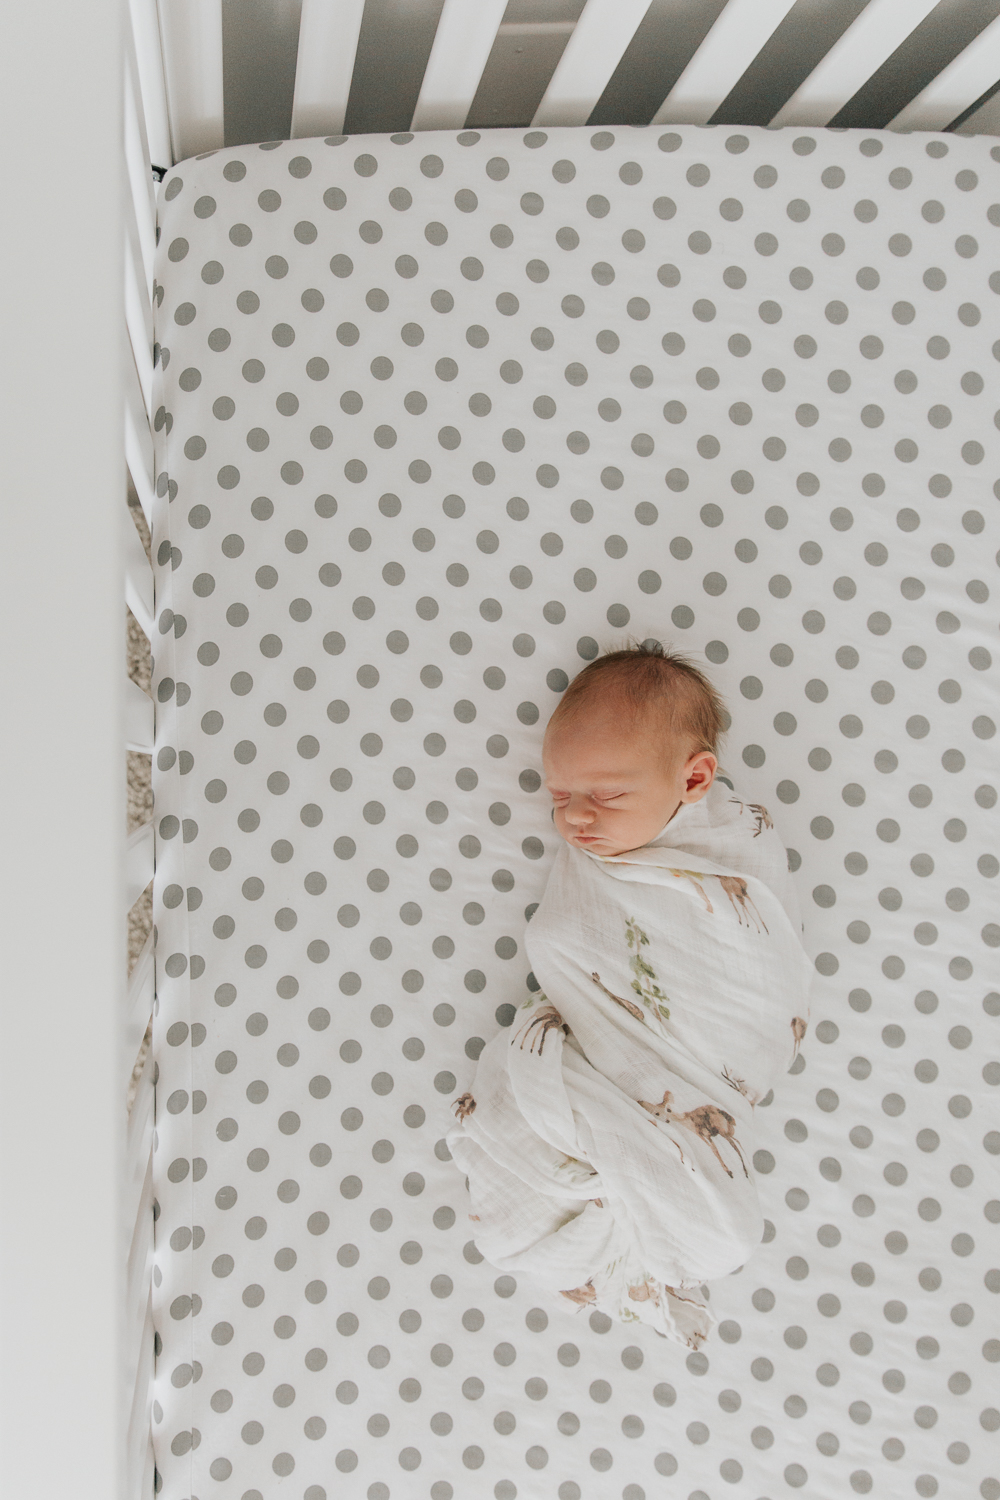 3 week old baby boy with red hair wrapped in swaddle and lying in crib with grey and white polka dot sheets -GTA Lifestyle Photos